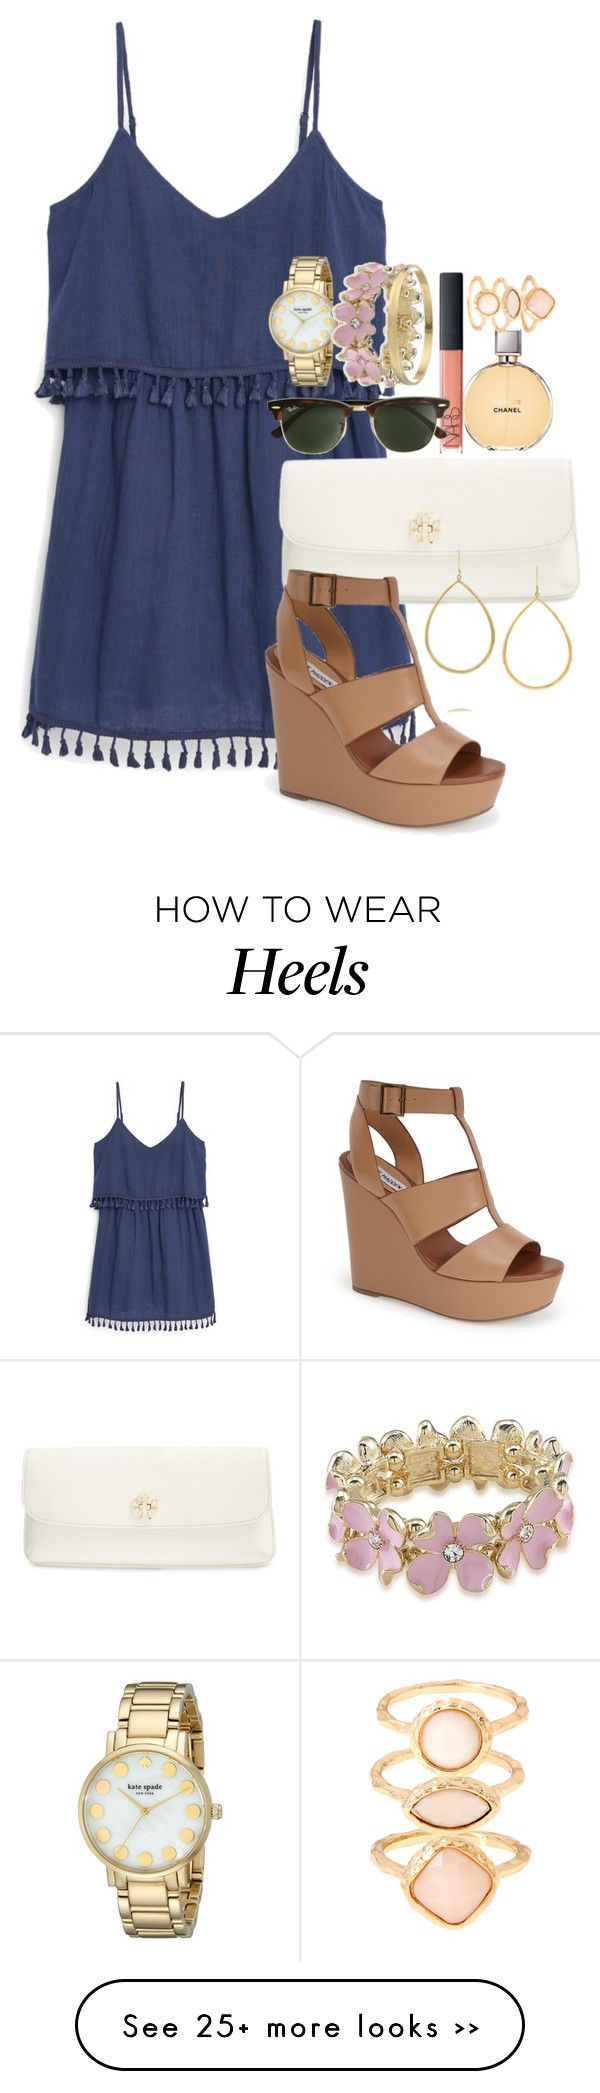 """Heels"" by katemcevoy11 on Polyvore"